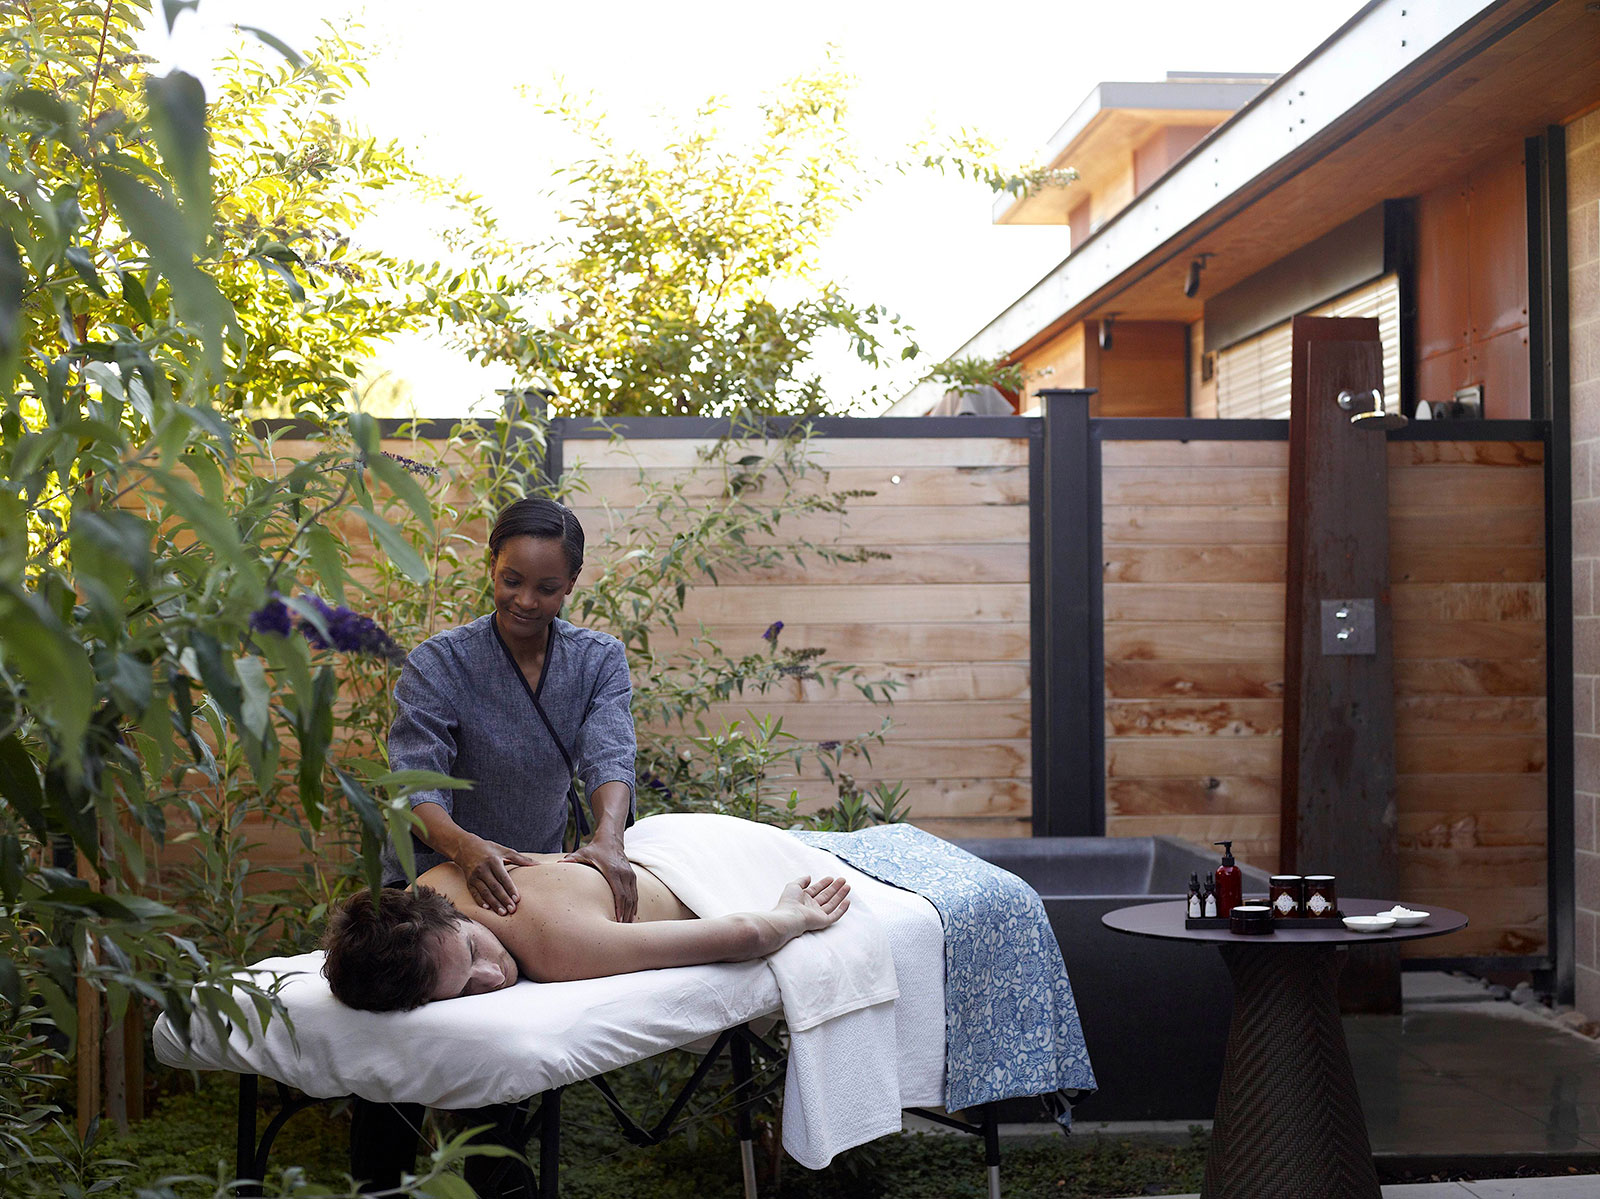 Outdoor Massage at our Spa Resort in Yountville, CA